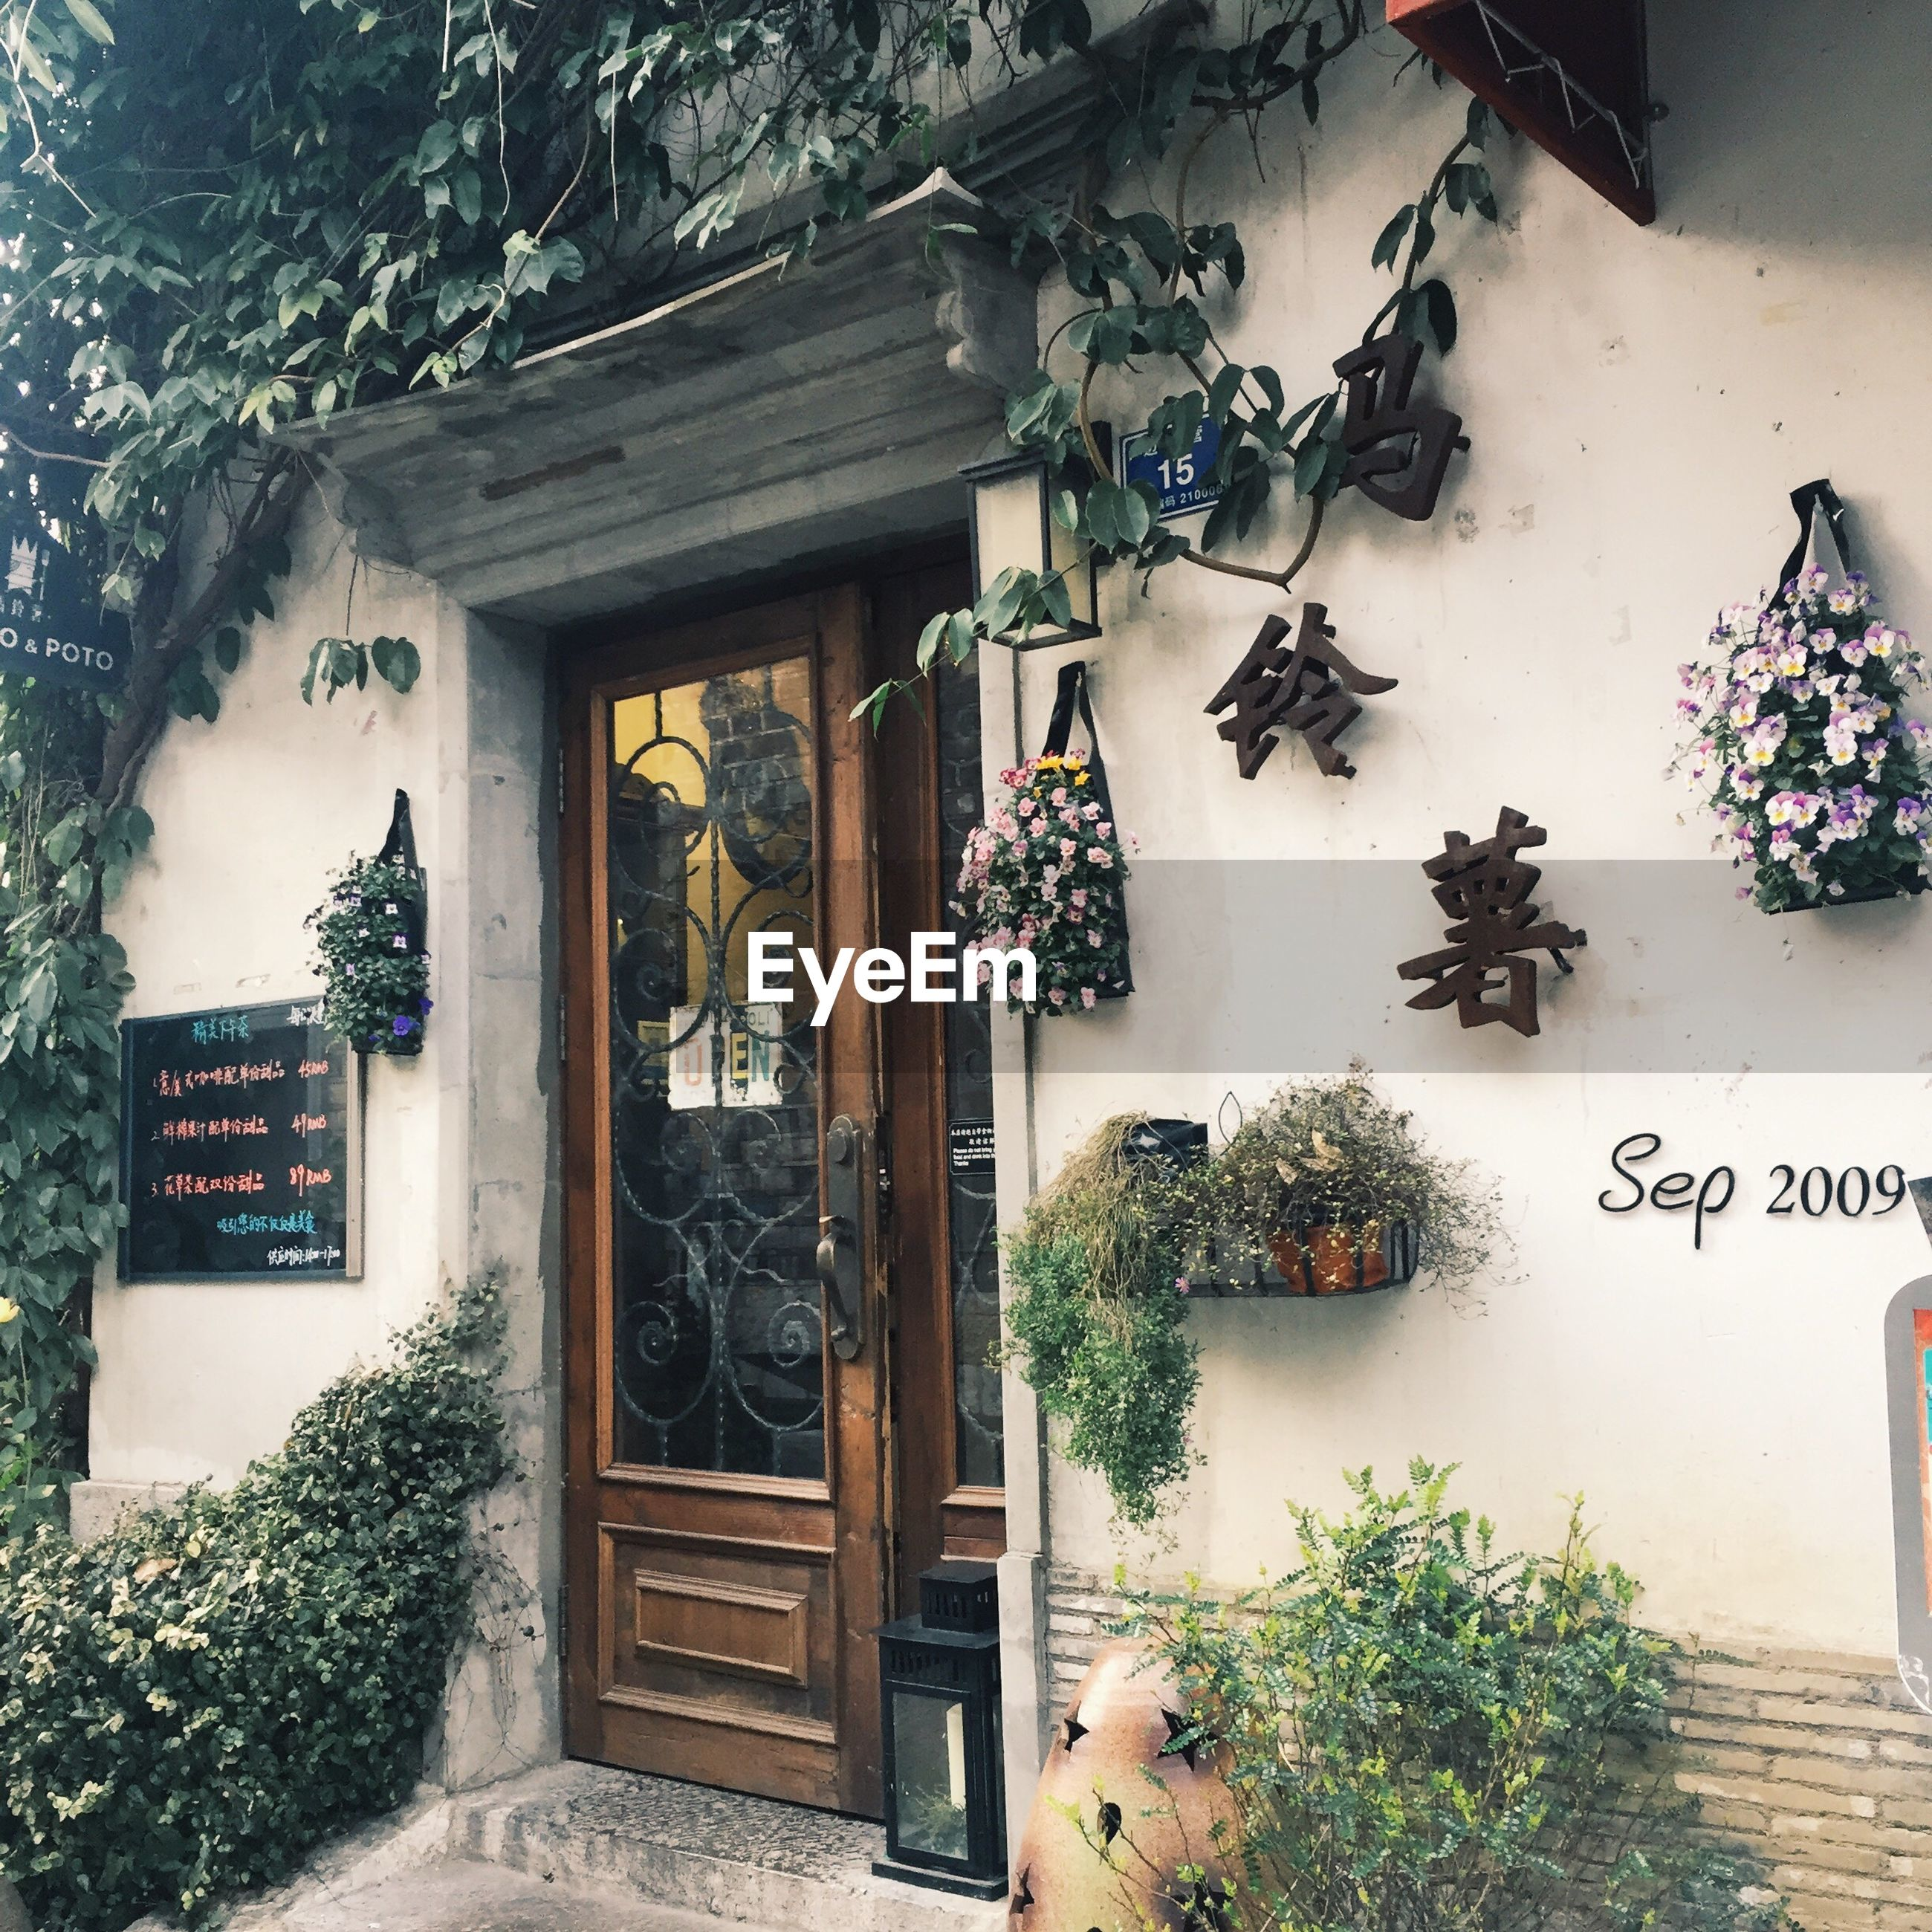 tree, plant, no people, window, christmas tree, christmas decoration, christmas, ivy, growth, day, building exterior, nature, creeper plant, outdoors, architecture, christmas ornament